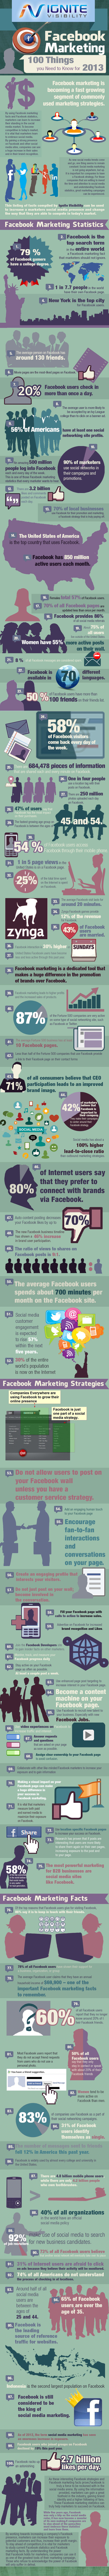 Facebook Marketing: 100 Things you Need to Know for 2013 [INFOGRAPHIC] | Social Media Science | Scoop.it